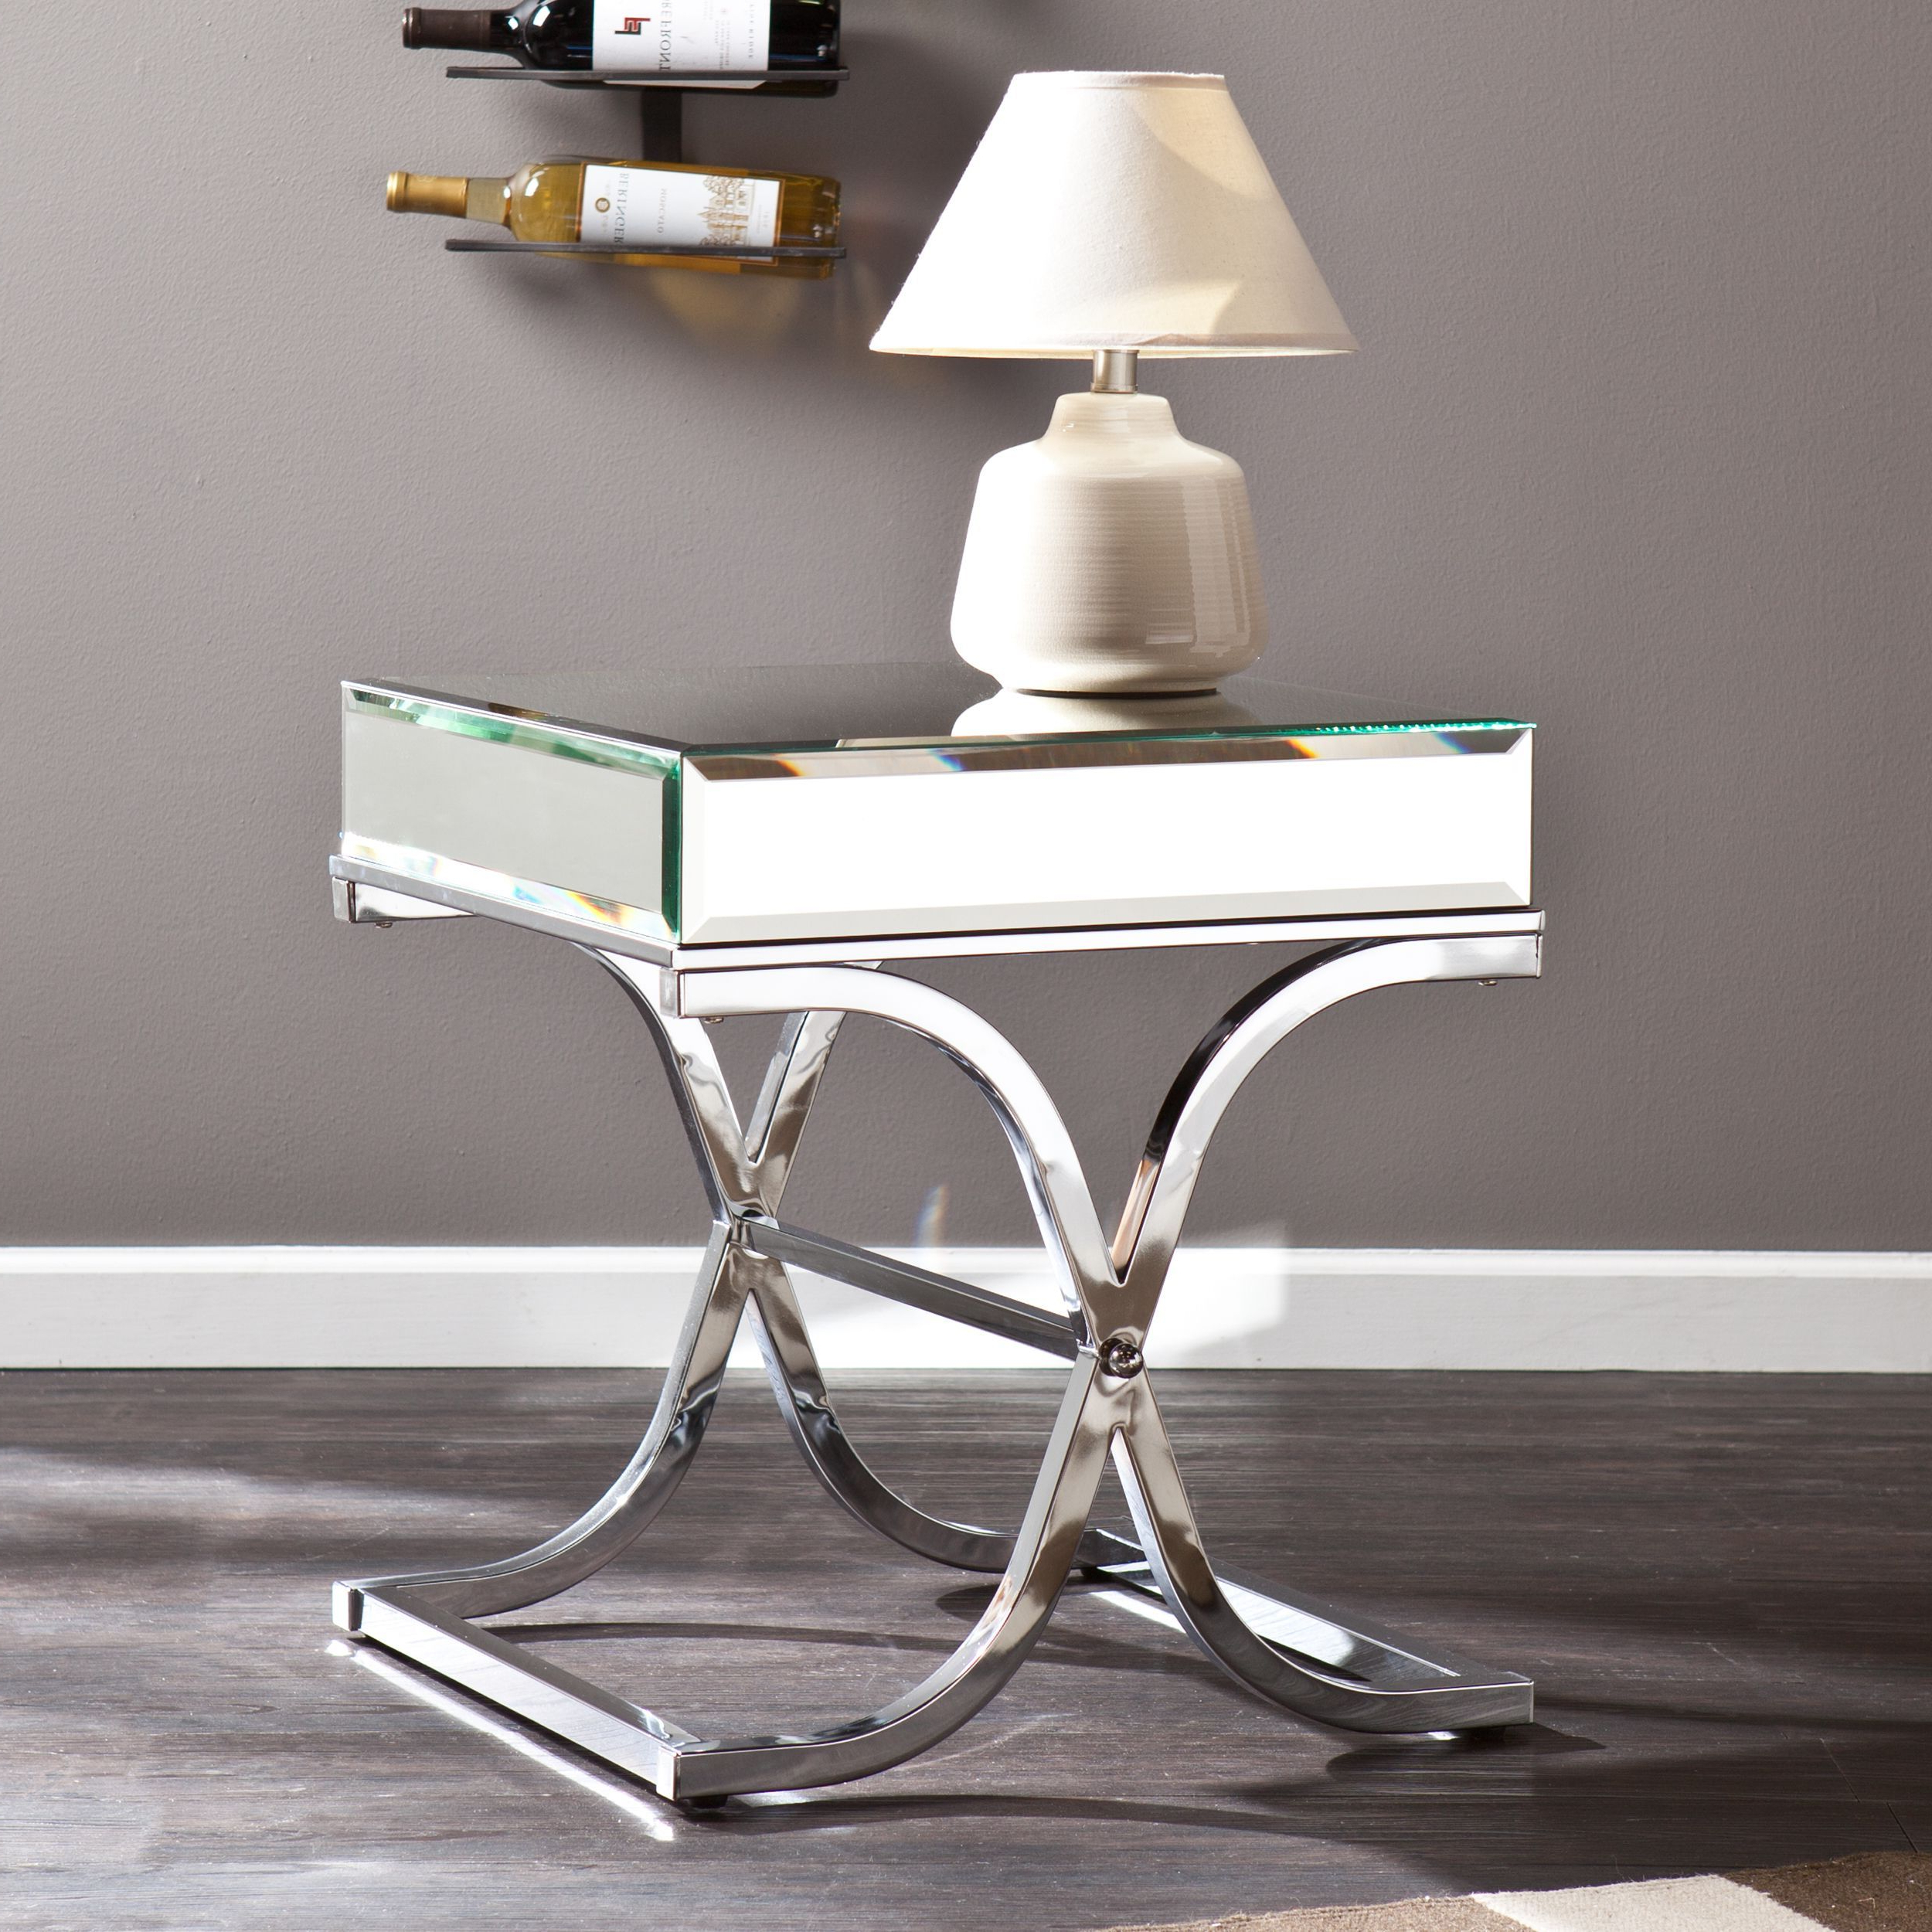 Popular Silver Orchid Olivia Glam Mirrored Round Cocktail Tables Intended For Harper Blvd Annabelle Chrome Mirrored Side/ End Table (View 18 of 20)